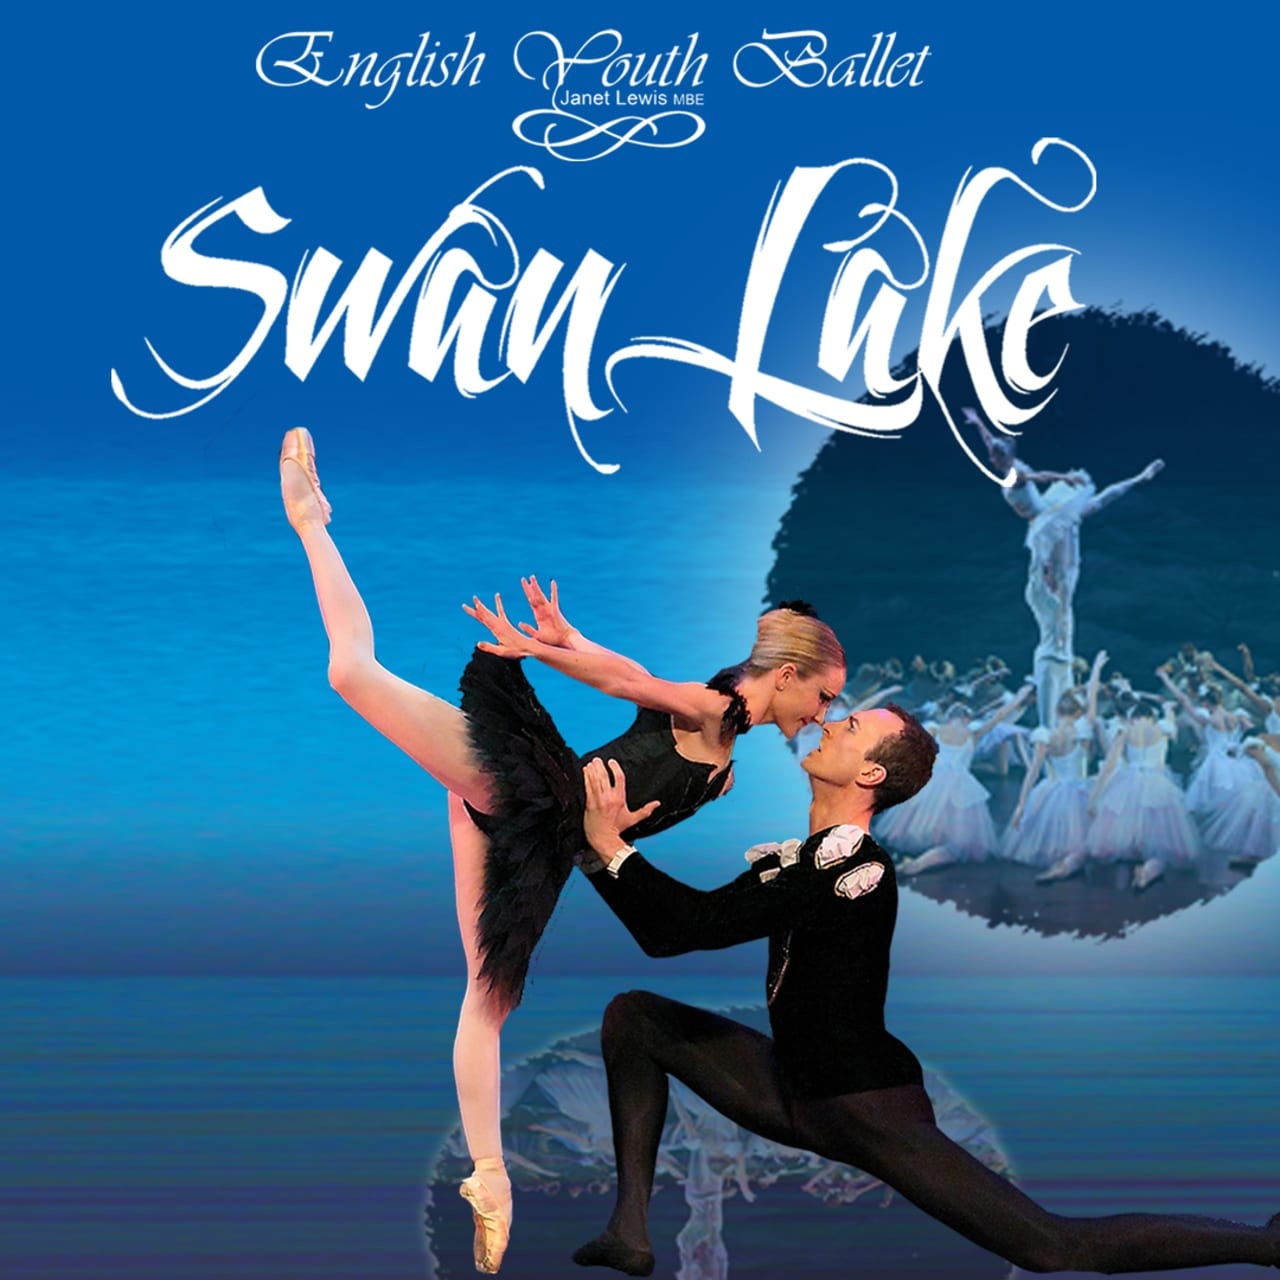 English Youth Ballet – Swan Lake